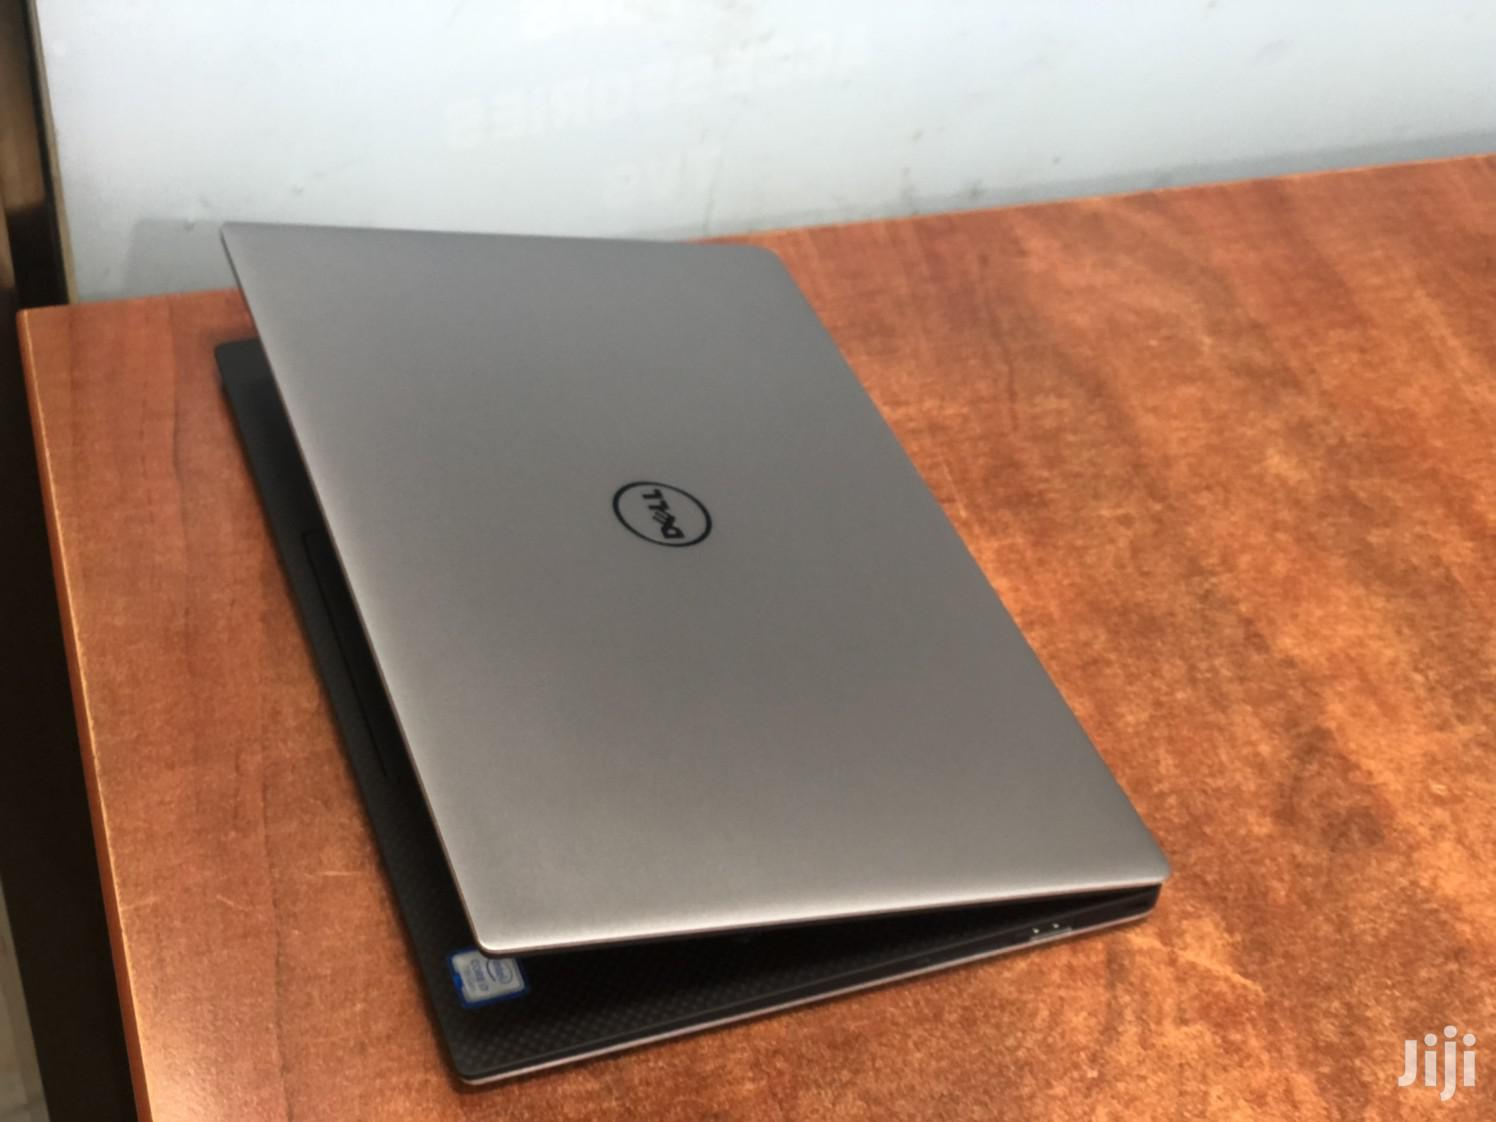 Archive: New Laptop Dell XPS 13 9360 8GB Intel Core i7 SSD 256GB